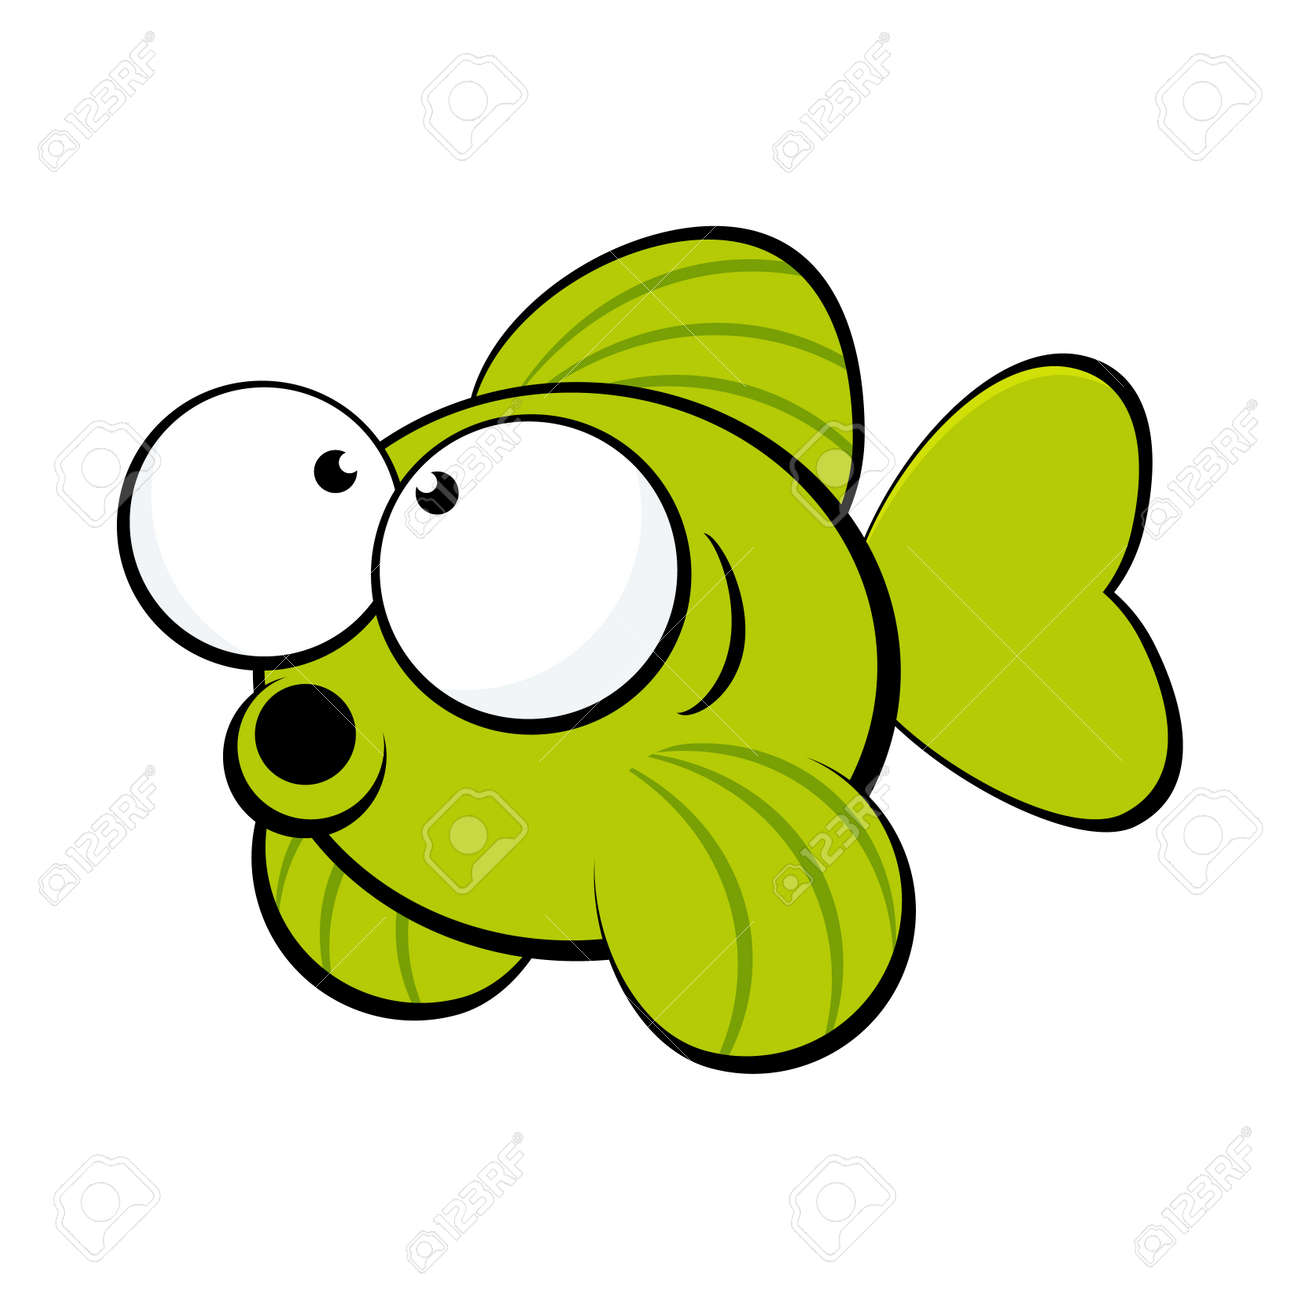 Funny cartoon fish royalty free cliparts vectors and stock funny cartoon fish stock vector 5010370 voltagebd Images